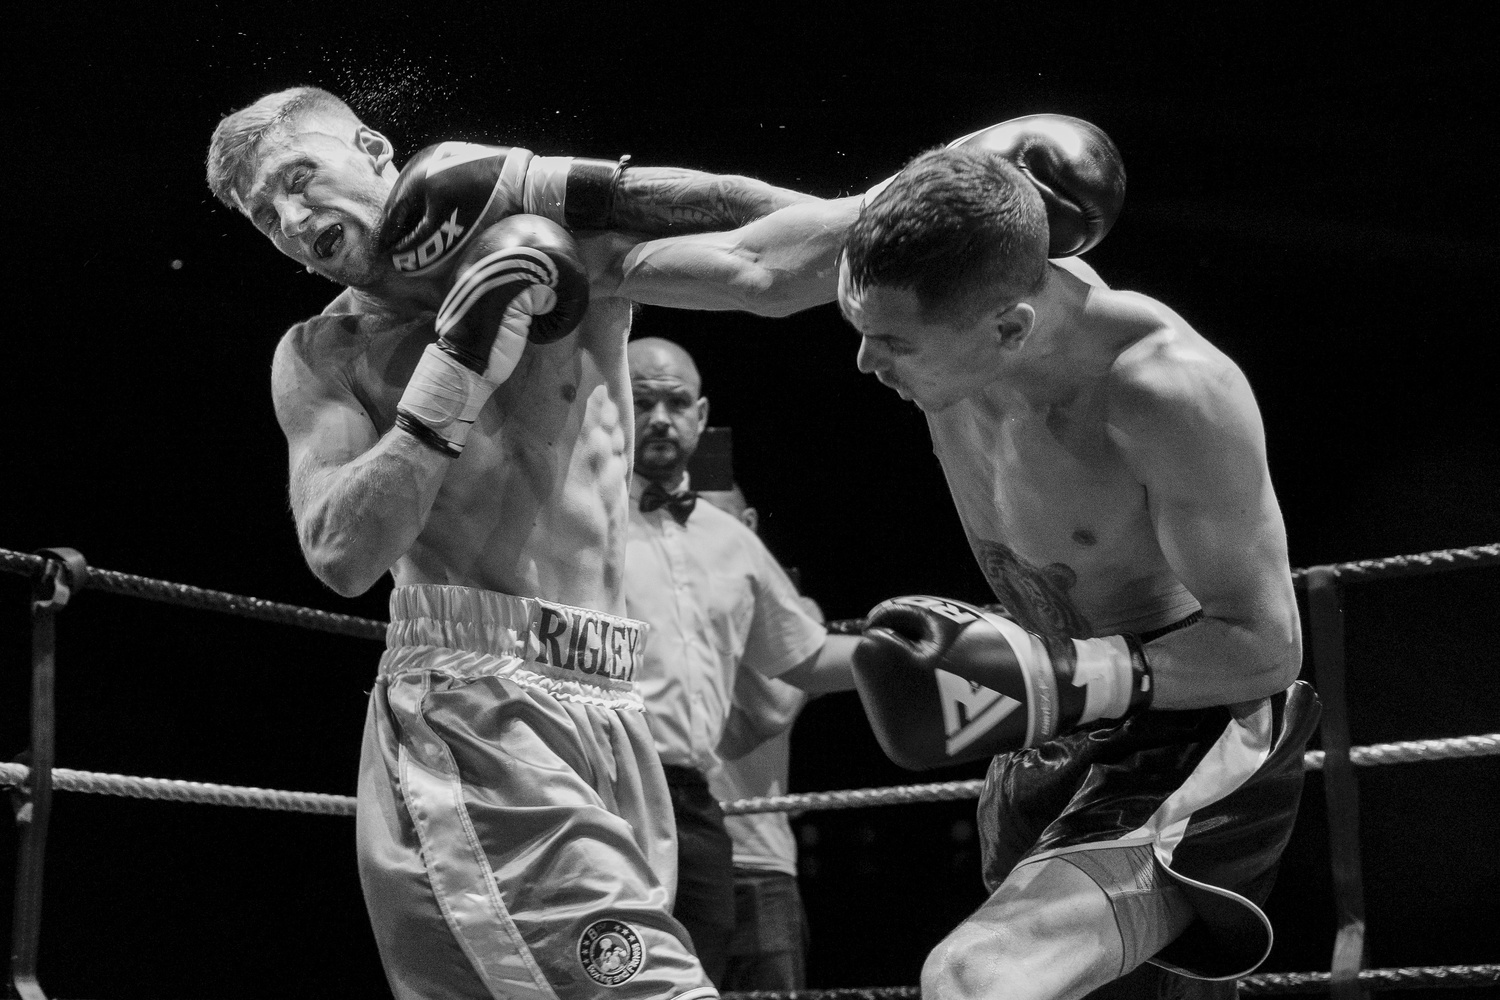 Knock out by Thomas Wragg